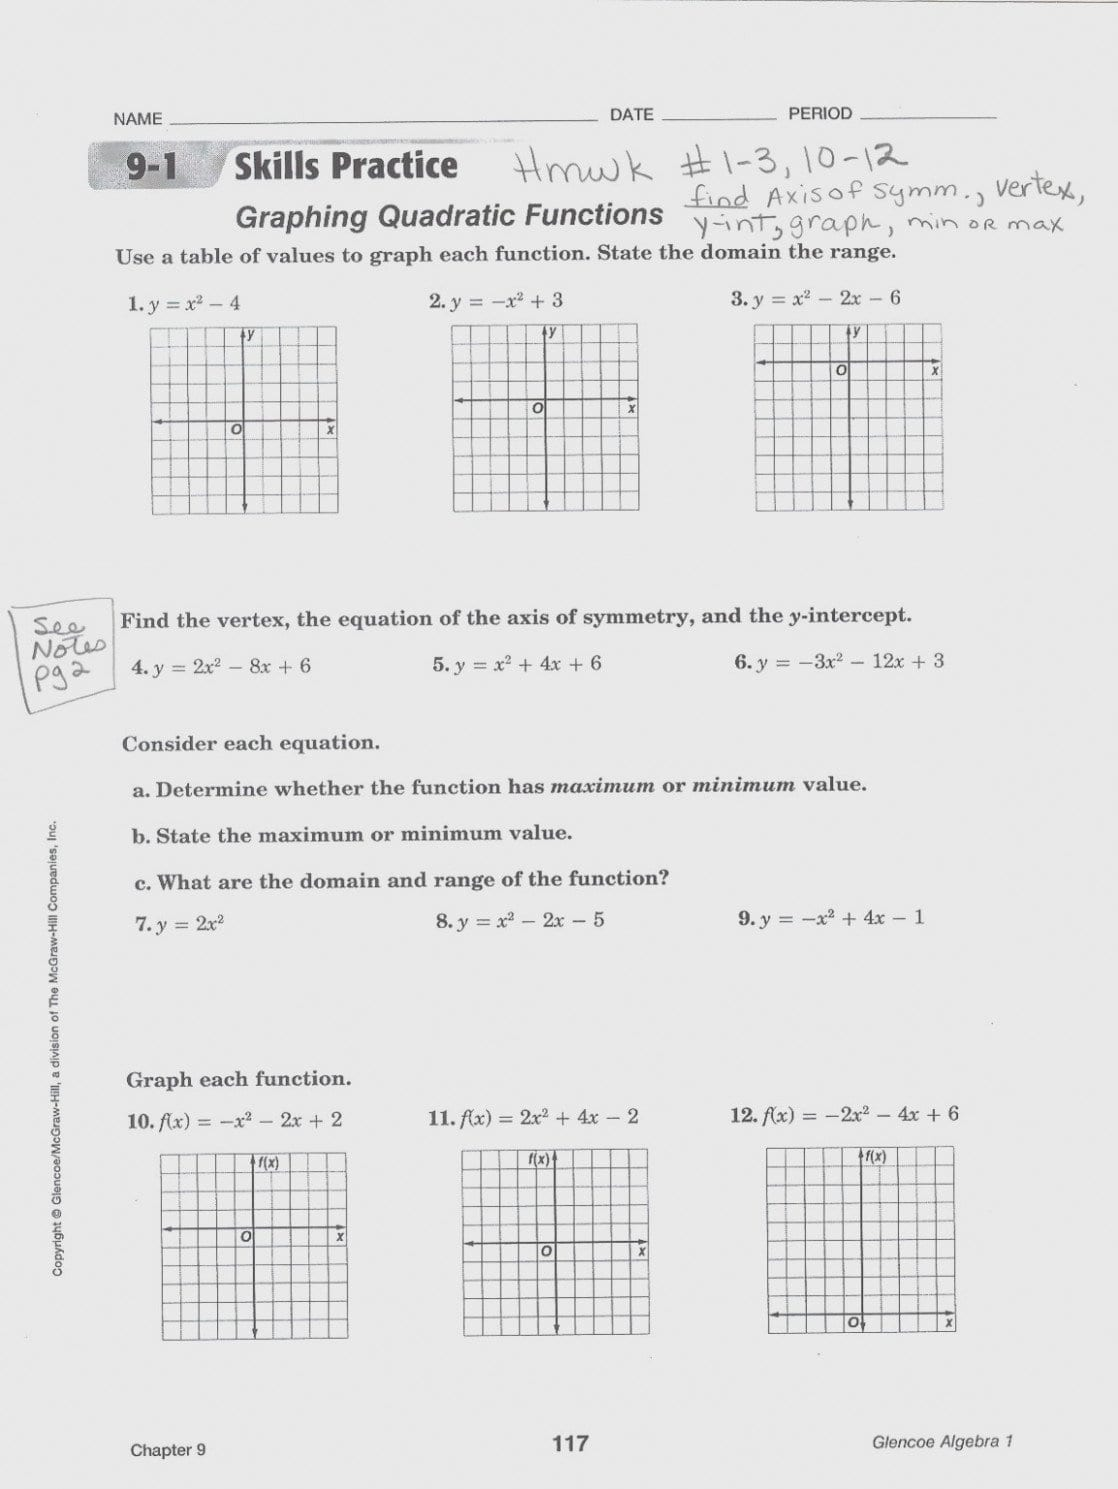 Math Worksheets Graphing Quadratic Equations 11 – Myscres  – Form Regarding Practice Worksheet Graphing Quadratic Functions In Standard Form